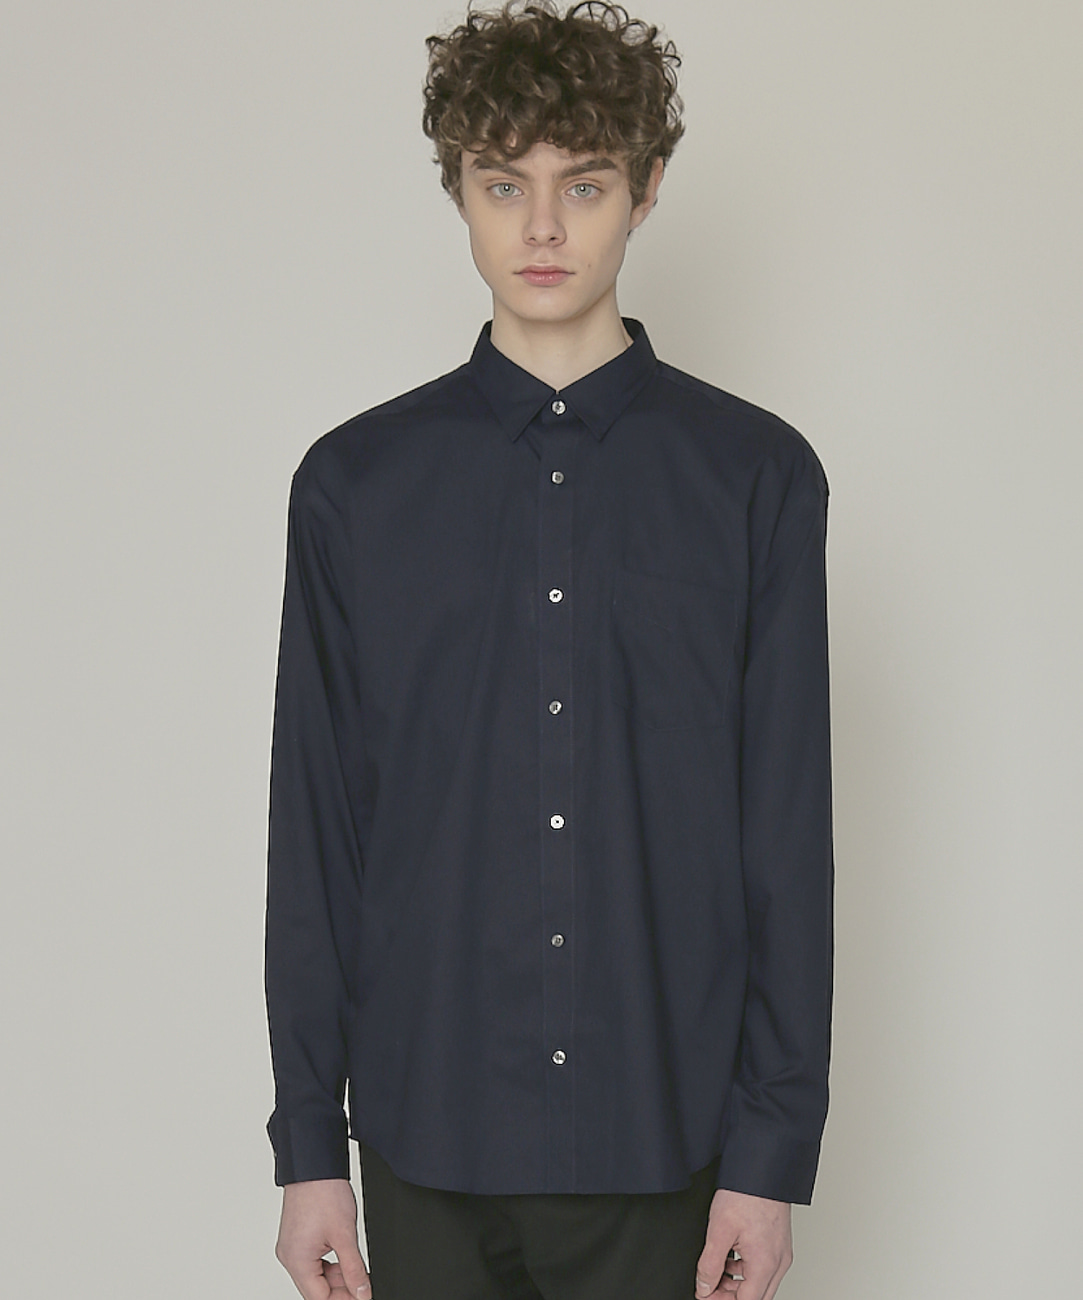 DWS ESSENTIAL SHIRTS(NAVY)